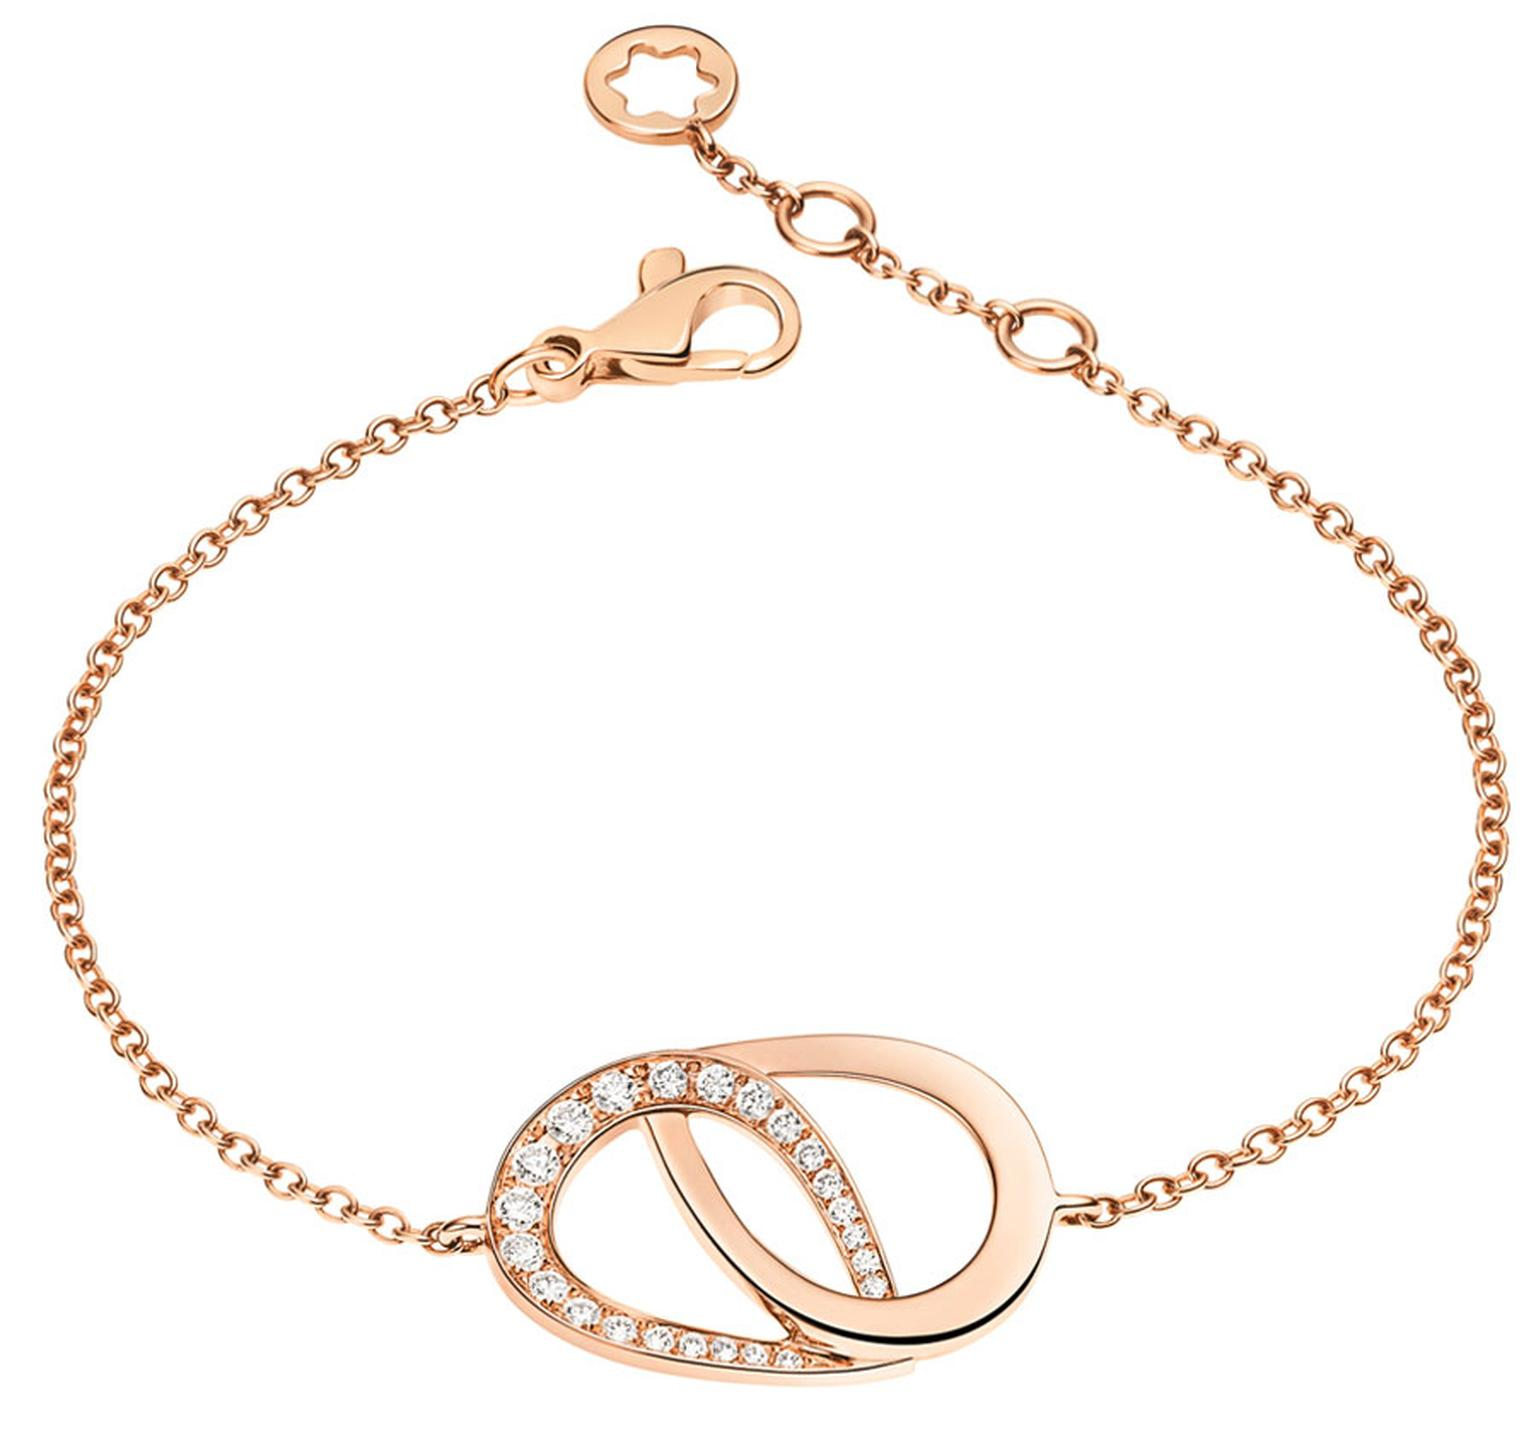 Montblanc_Collection_Princesse_Grace_de_Monaco_Petales-Entrelaces_motif_bracelet_108002